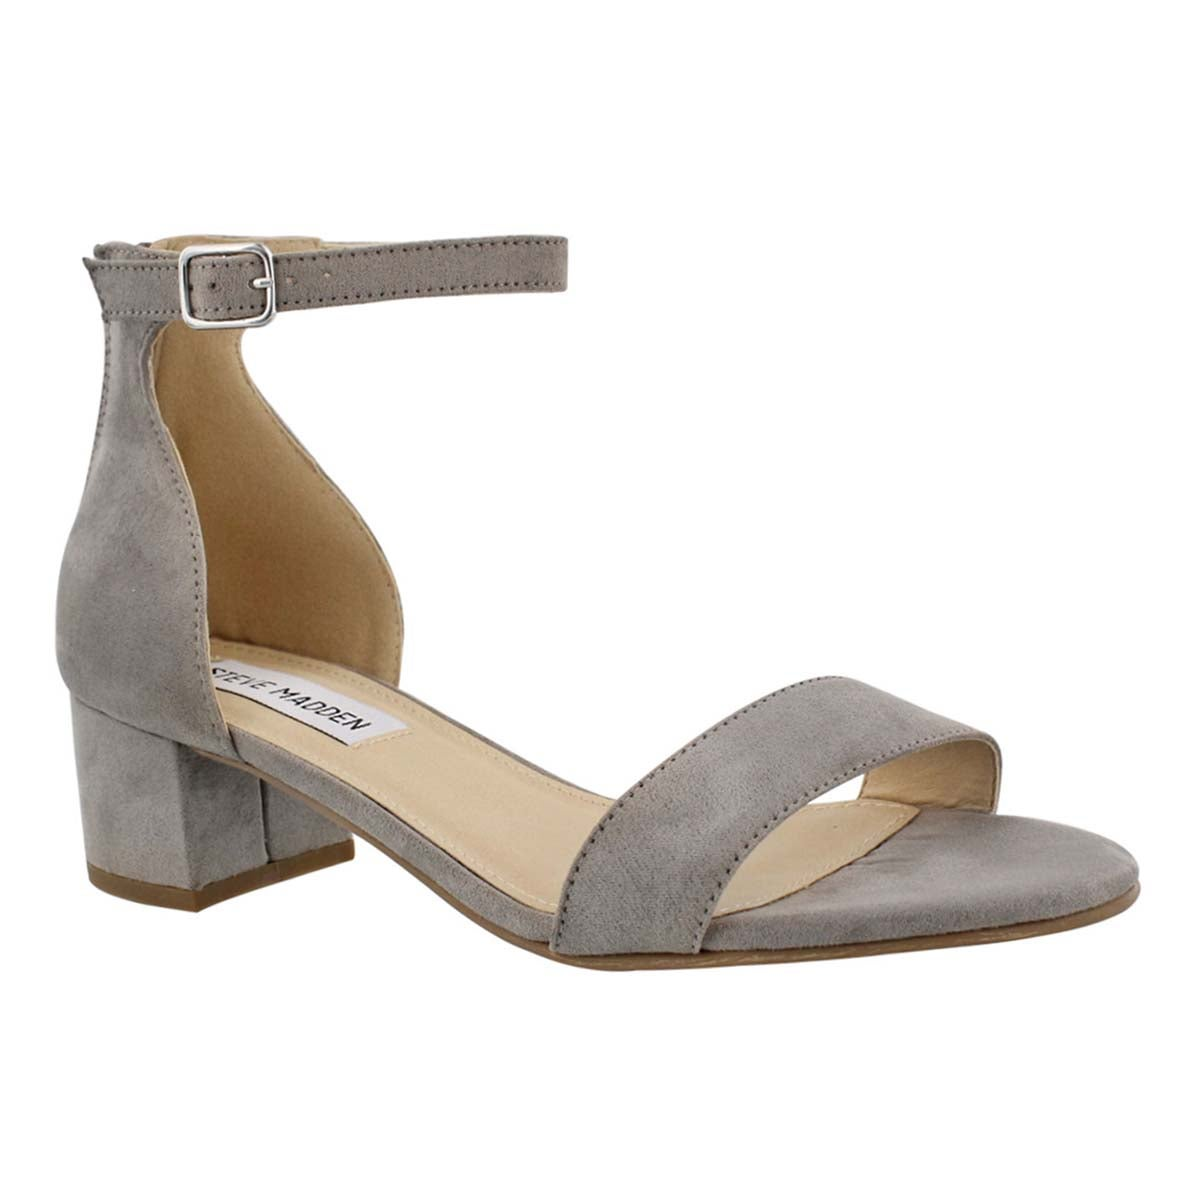 Lds Fabiana grey ankle strap dress sndl